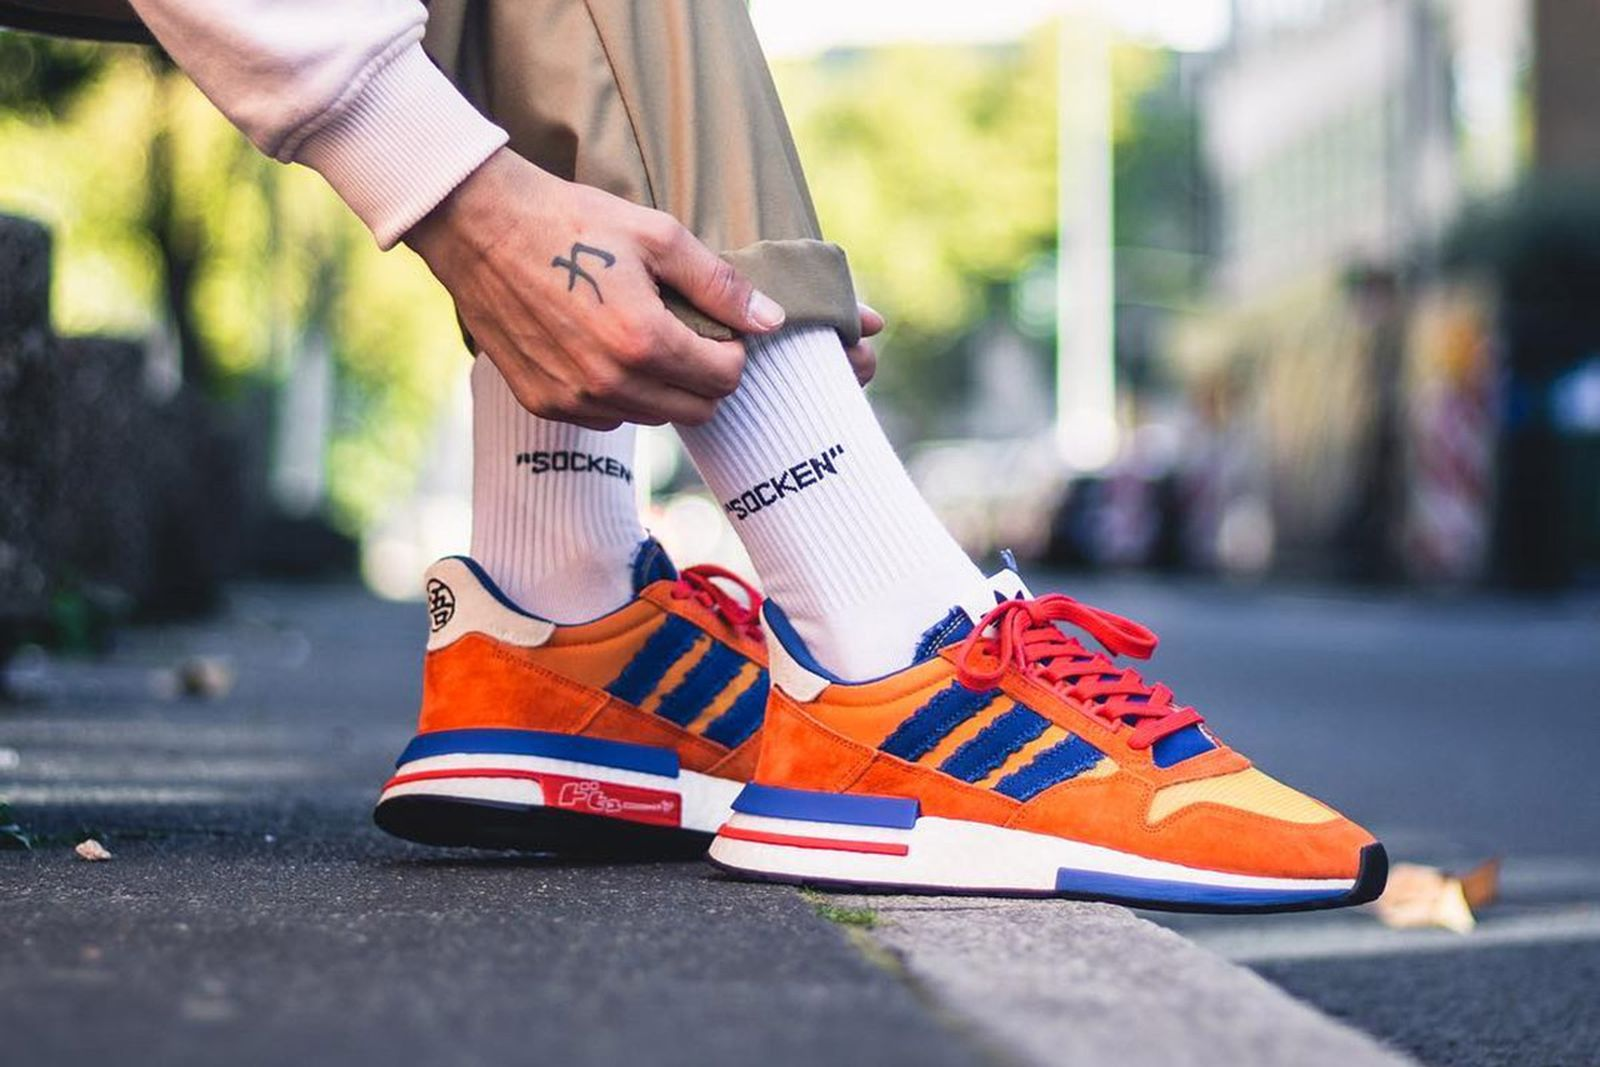 A través de Corchete Arquitectura  How People Are Wearing the 'Dragon Ball Z' x adidas Collab